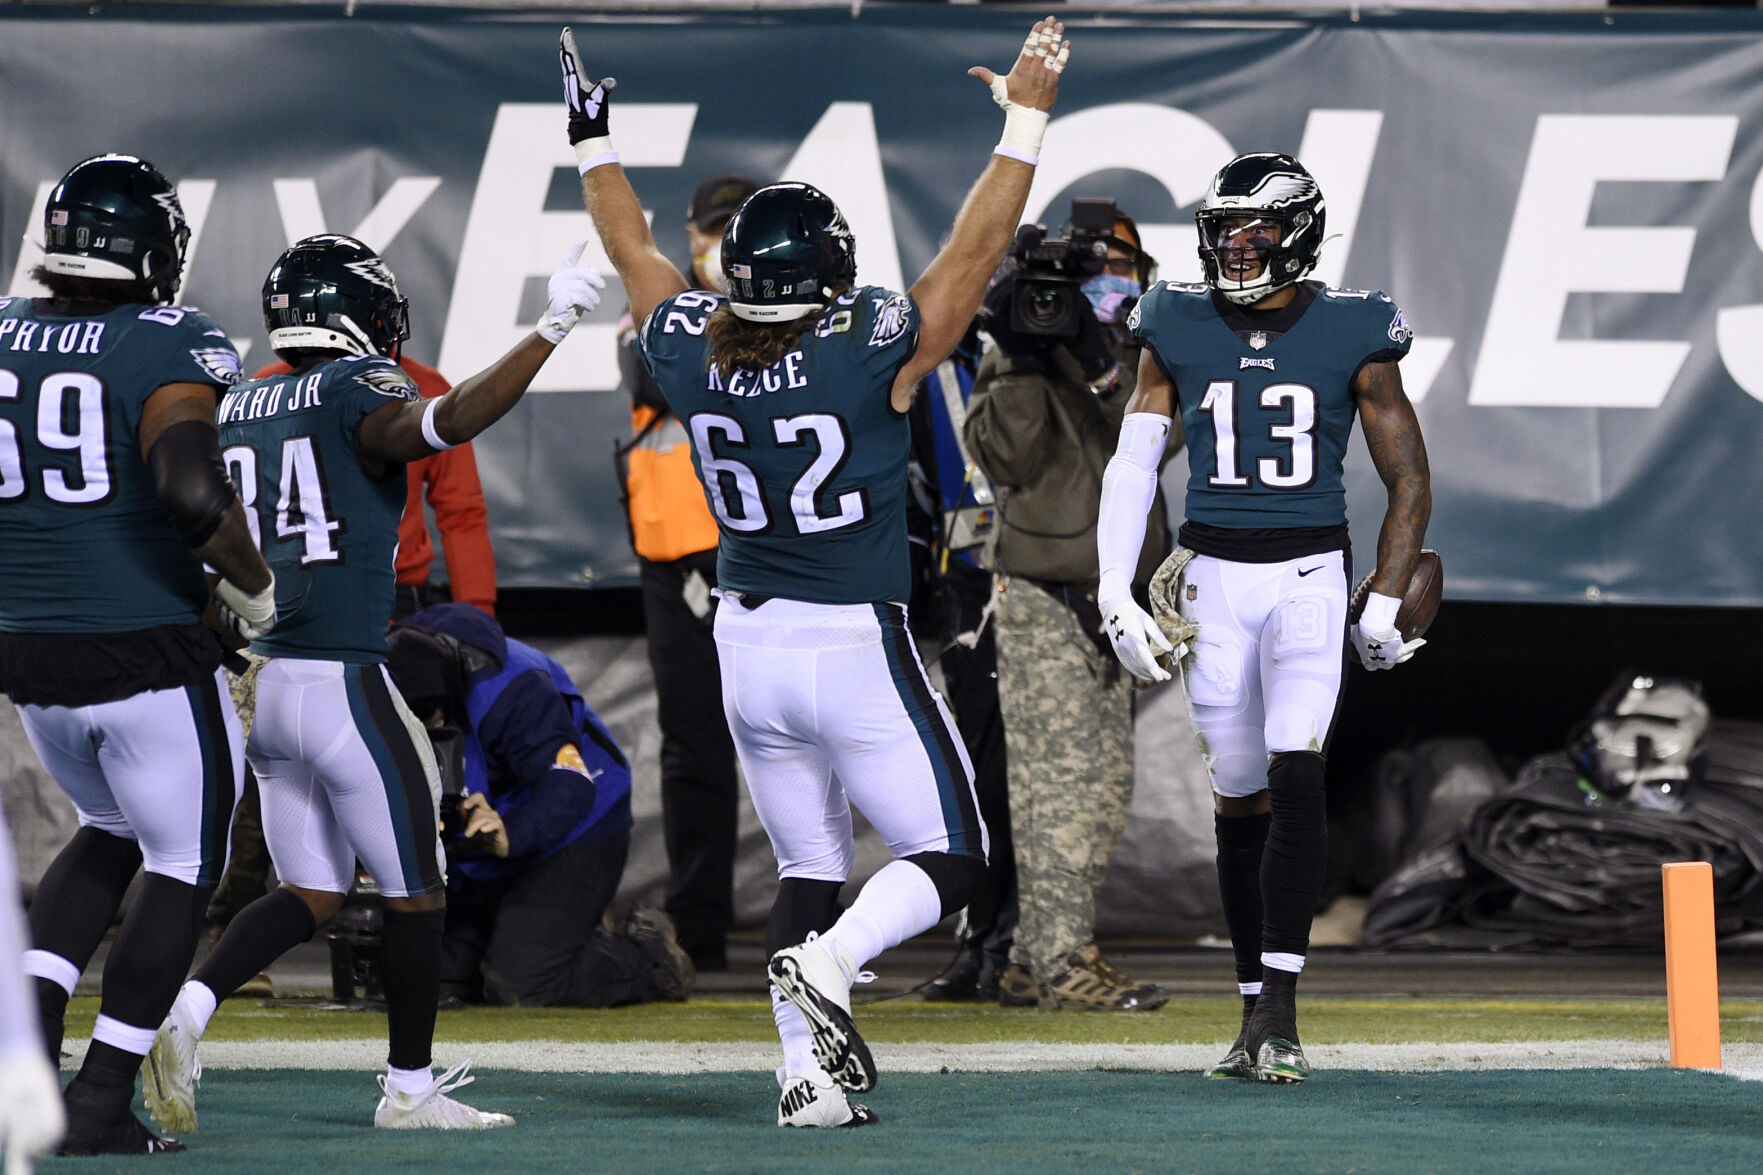 Eagles beat Cowboys 23-9 in sloppy battle for 1st place in NFC east 6